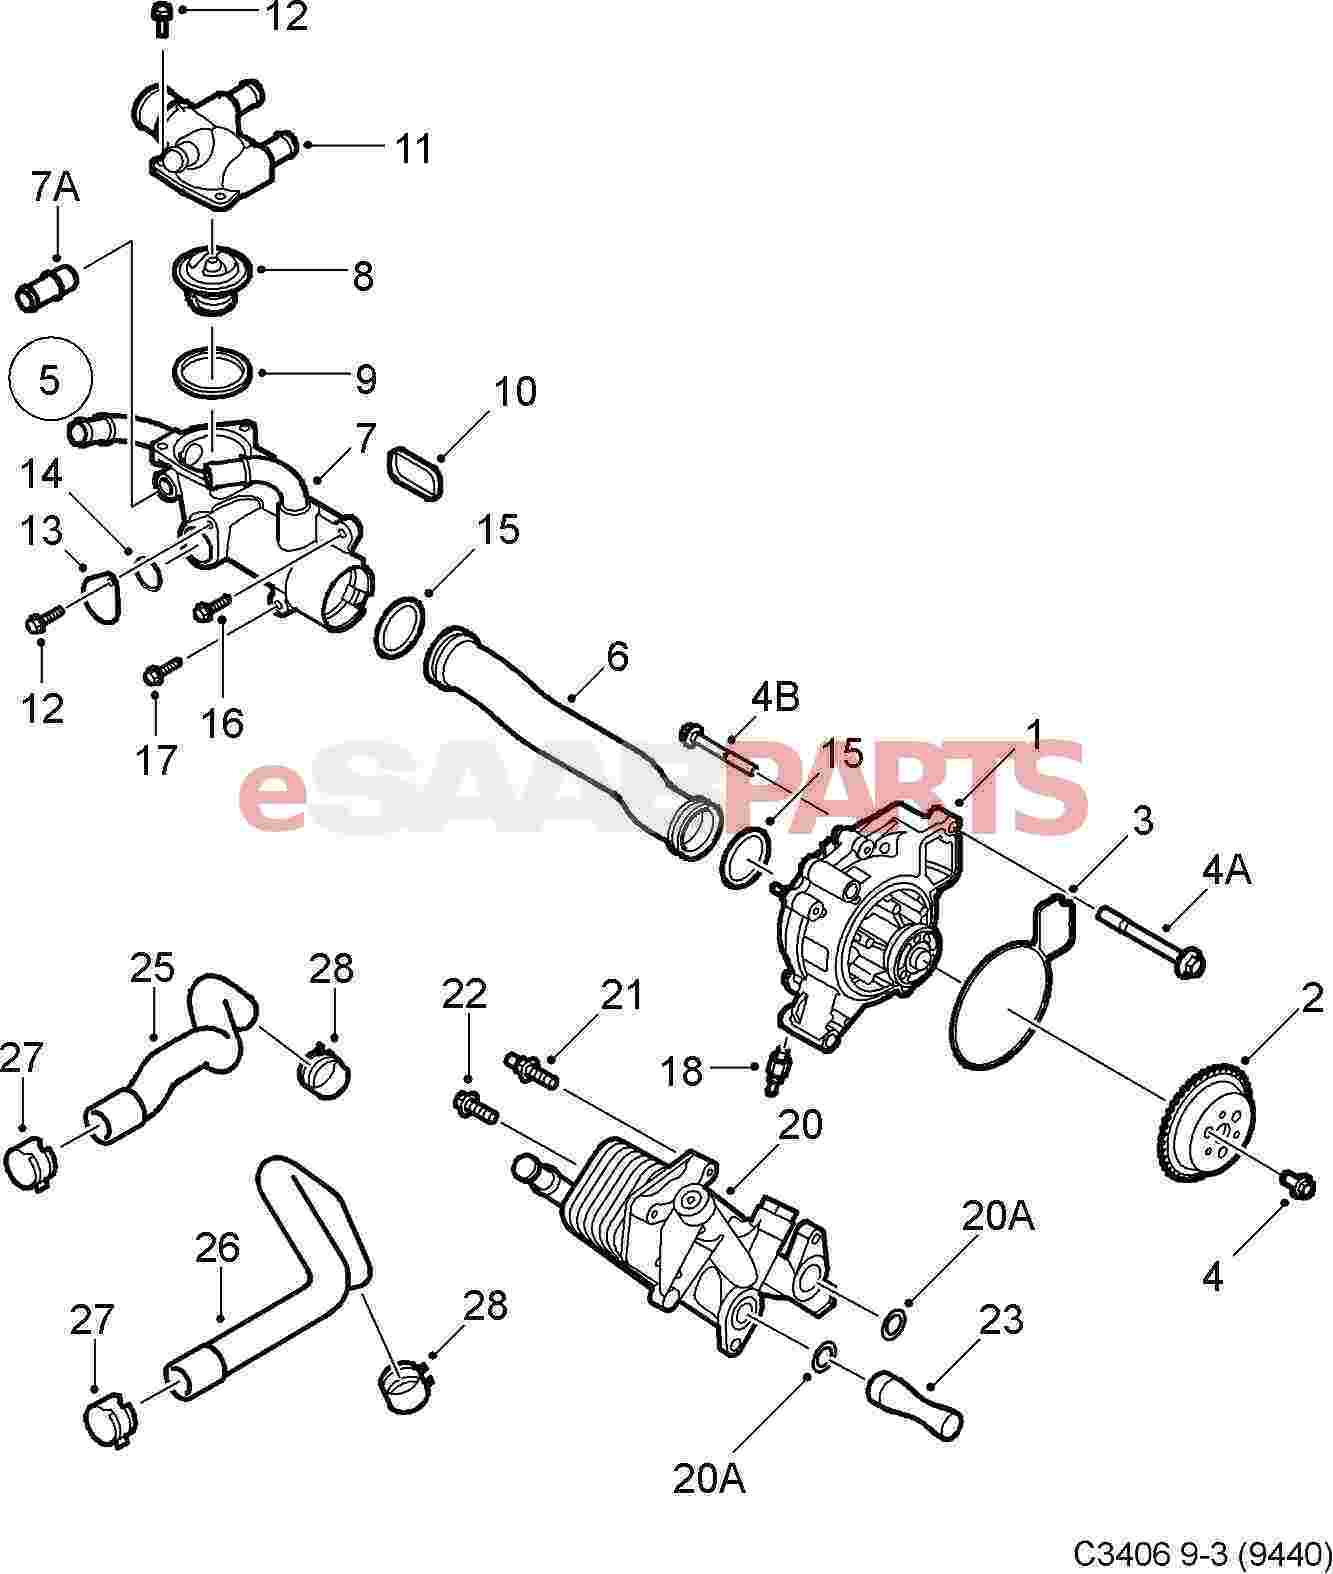 Saab 9 3 9440 Engine Parts Water Pump Diagrams Thermostat B207